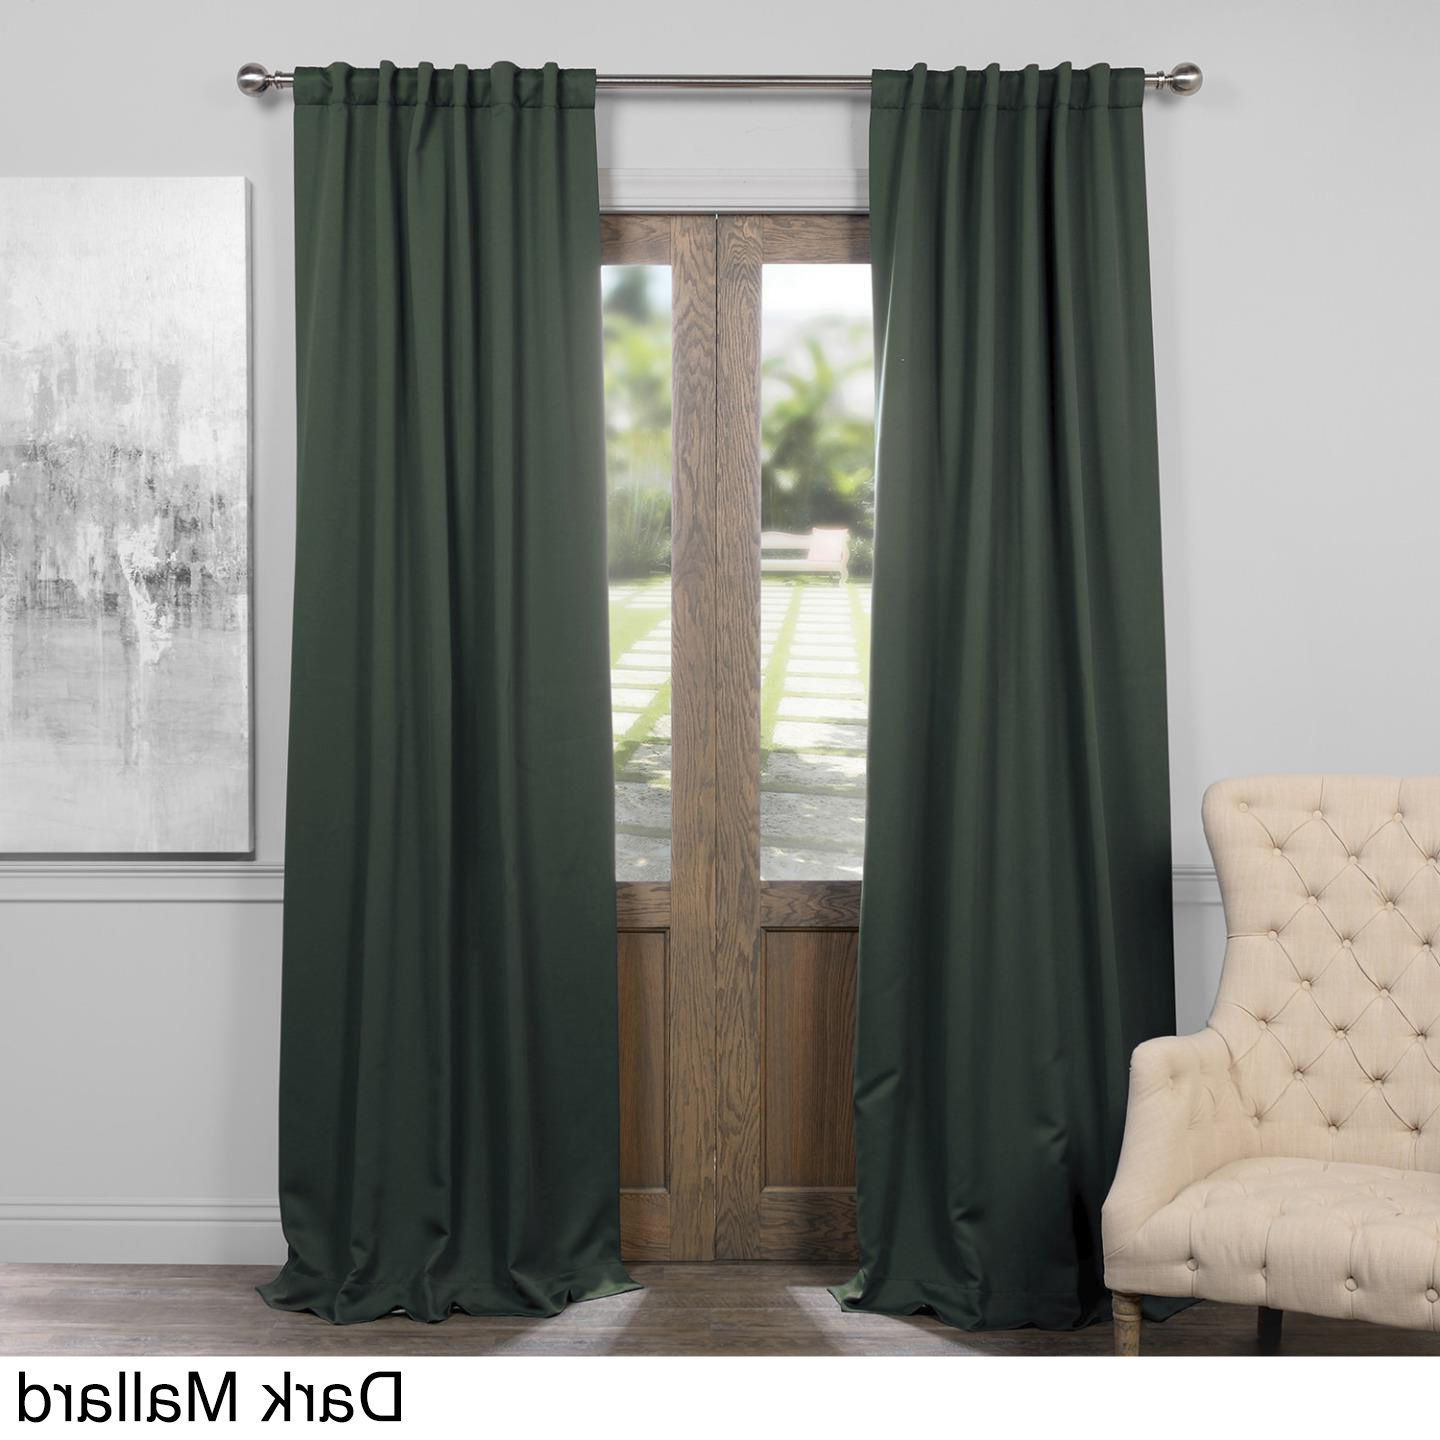 Exclusive Fabrics Thermal Insulated Solid Blackout 96 Inch Pertaining To Fashionable Solid Insulated Thermal Blackout Curtain Panel Pairs (View 13 of 20)